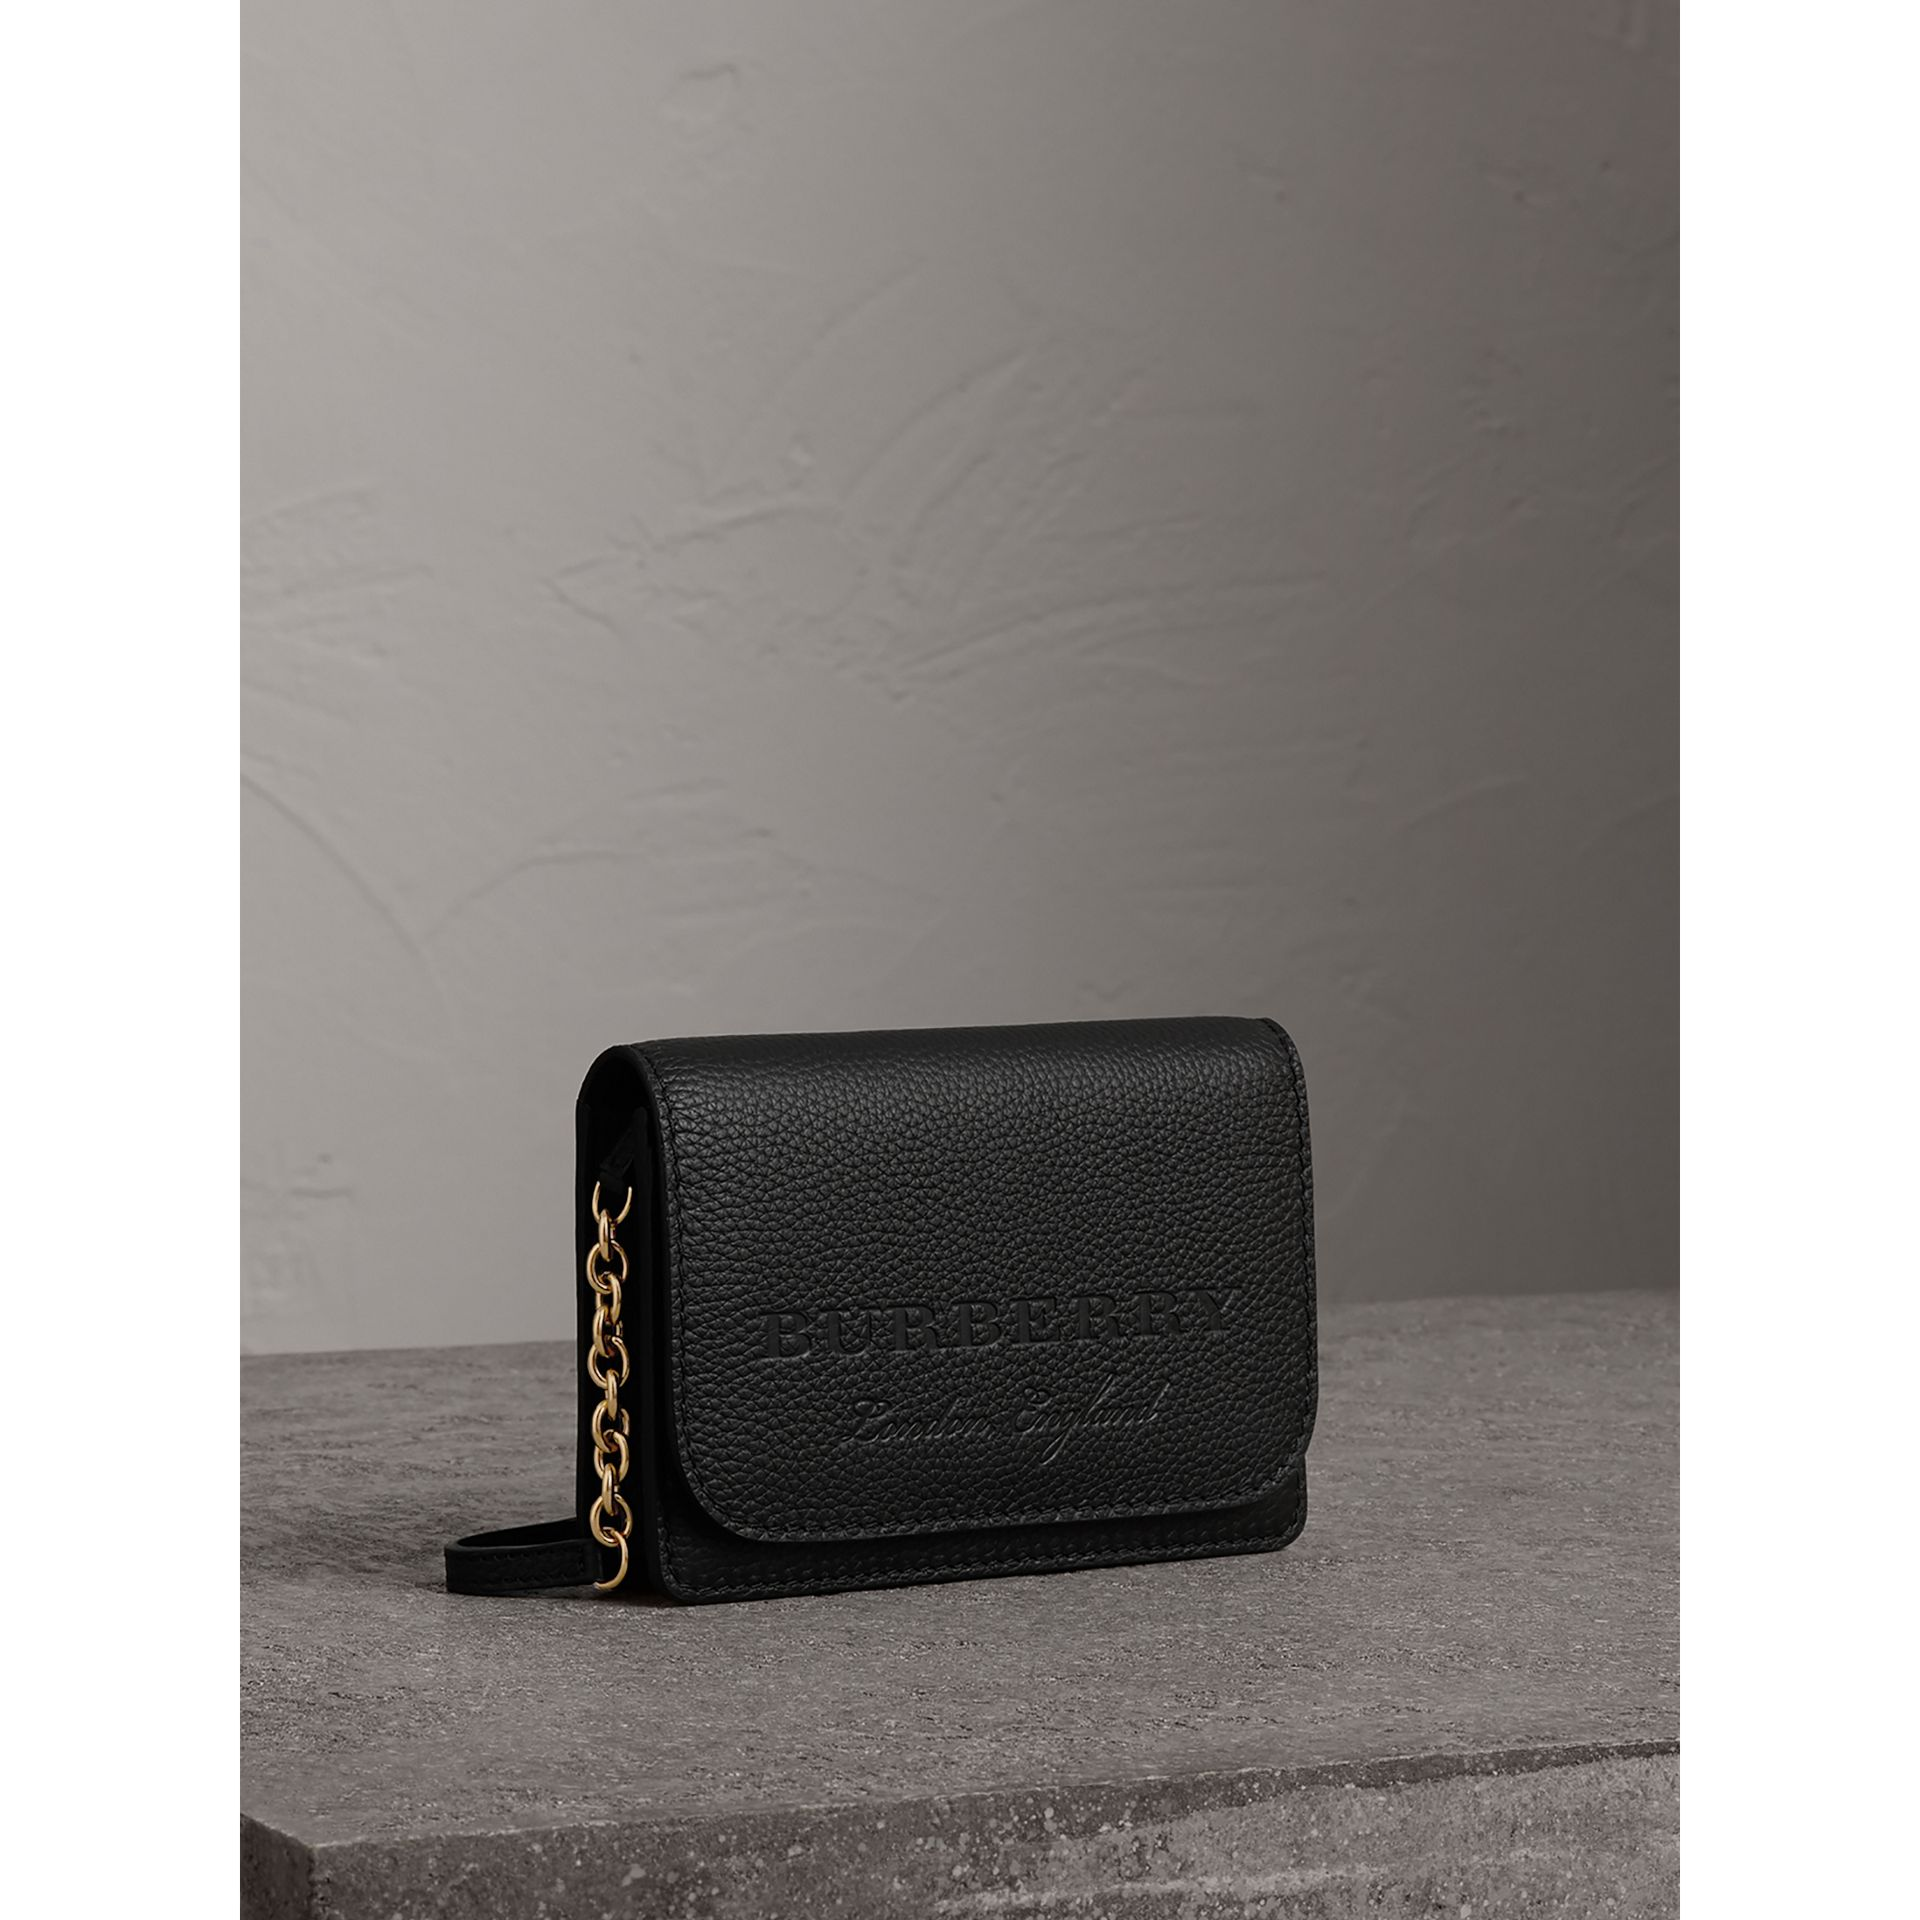 Embossed Leather Wallet with Detachable Strap in Black - Women | Burberry - gallery image 6